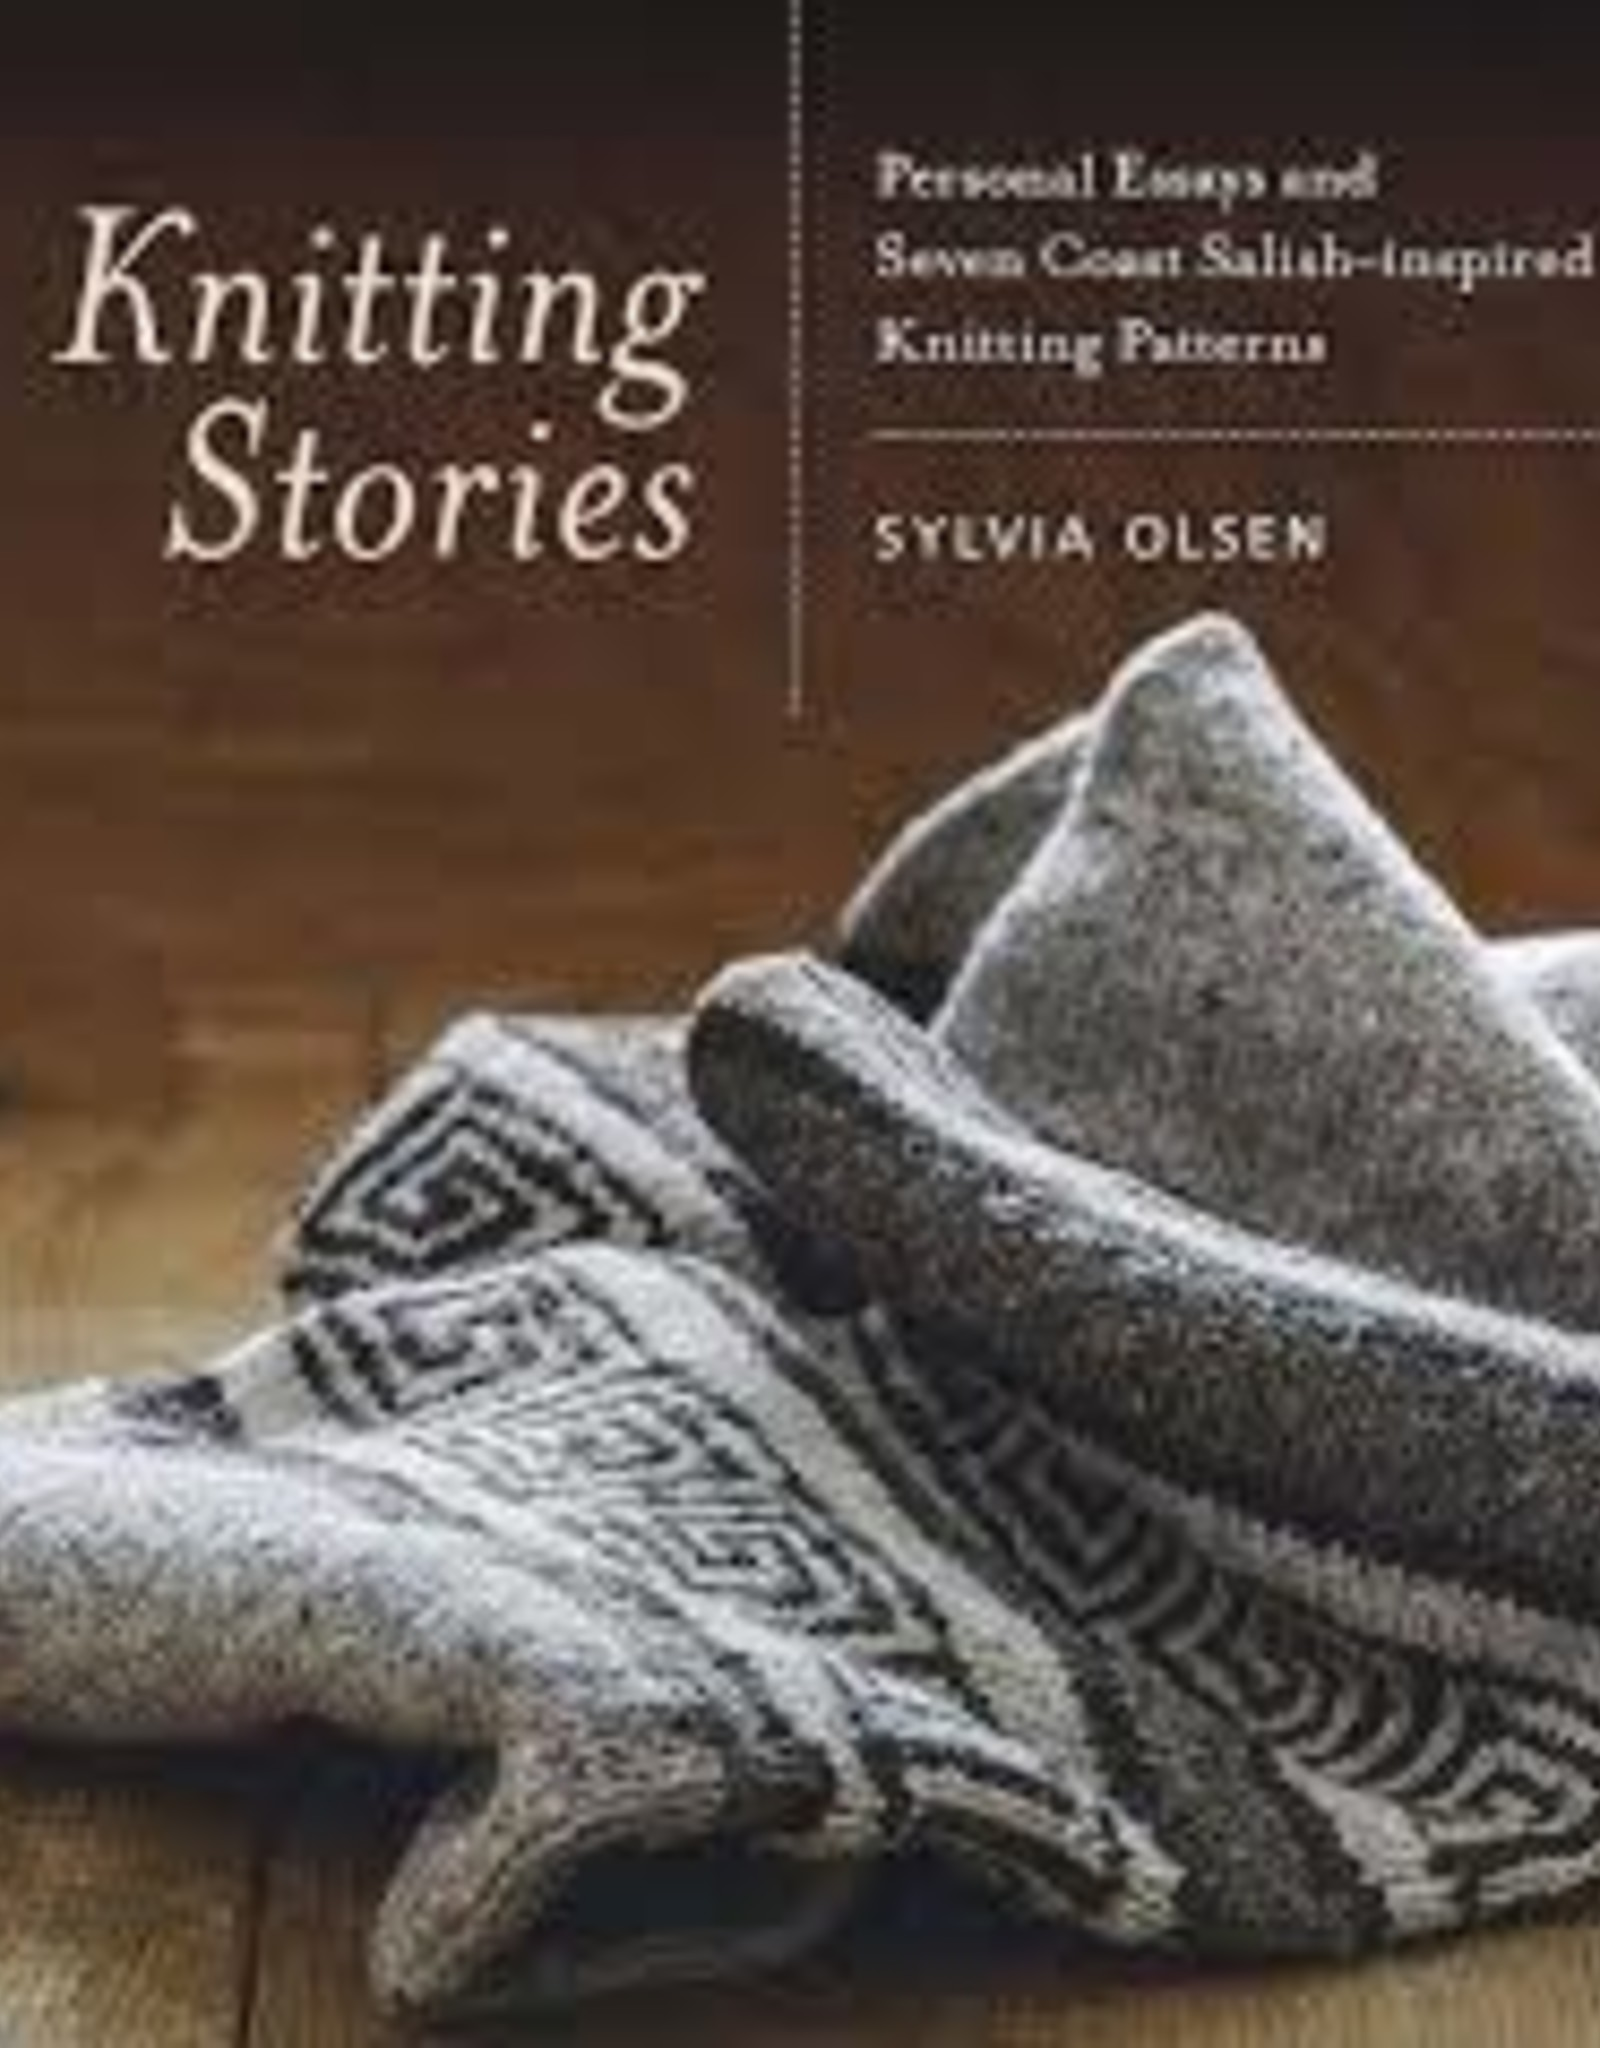 Book - Knitting Stories by Olsen